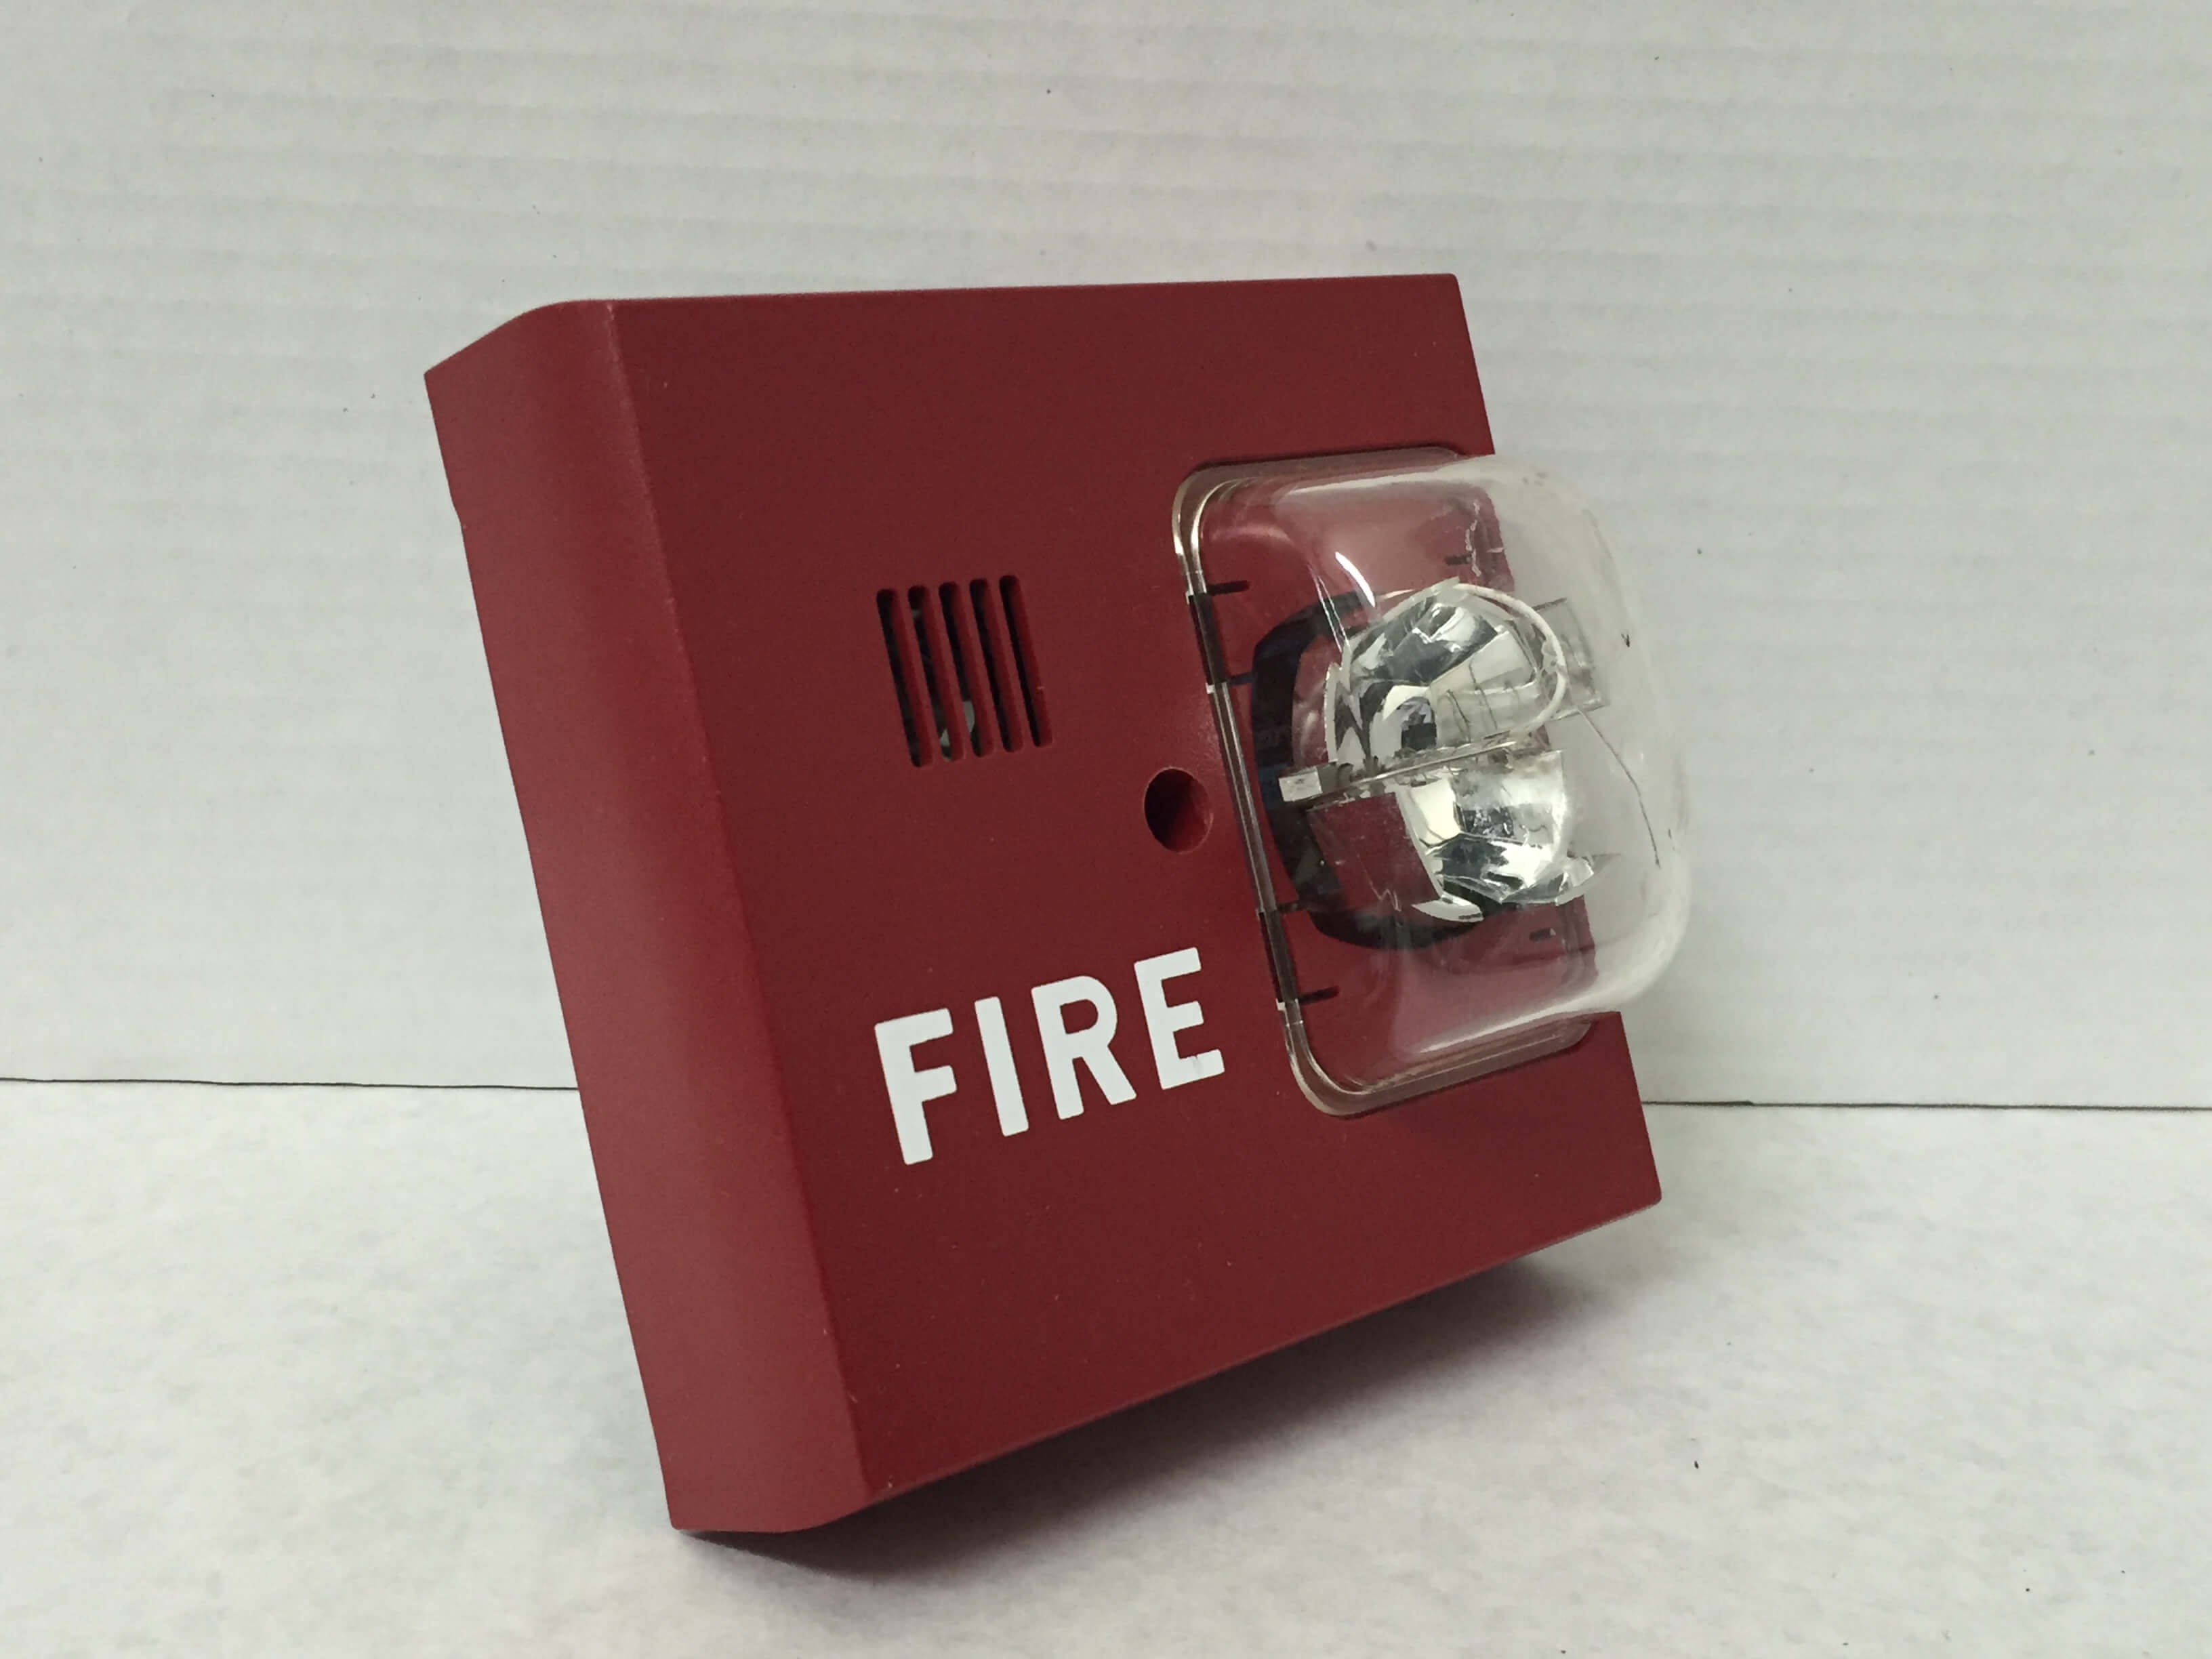 Faraday 2884 Firealarms Tv Jjinc24 U8ol0 S Fire Alarm